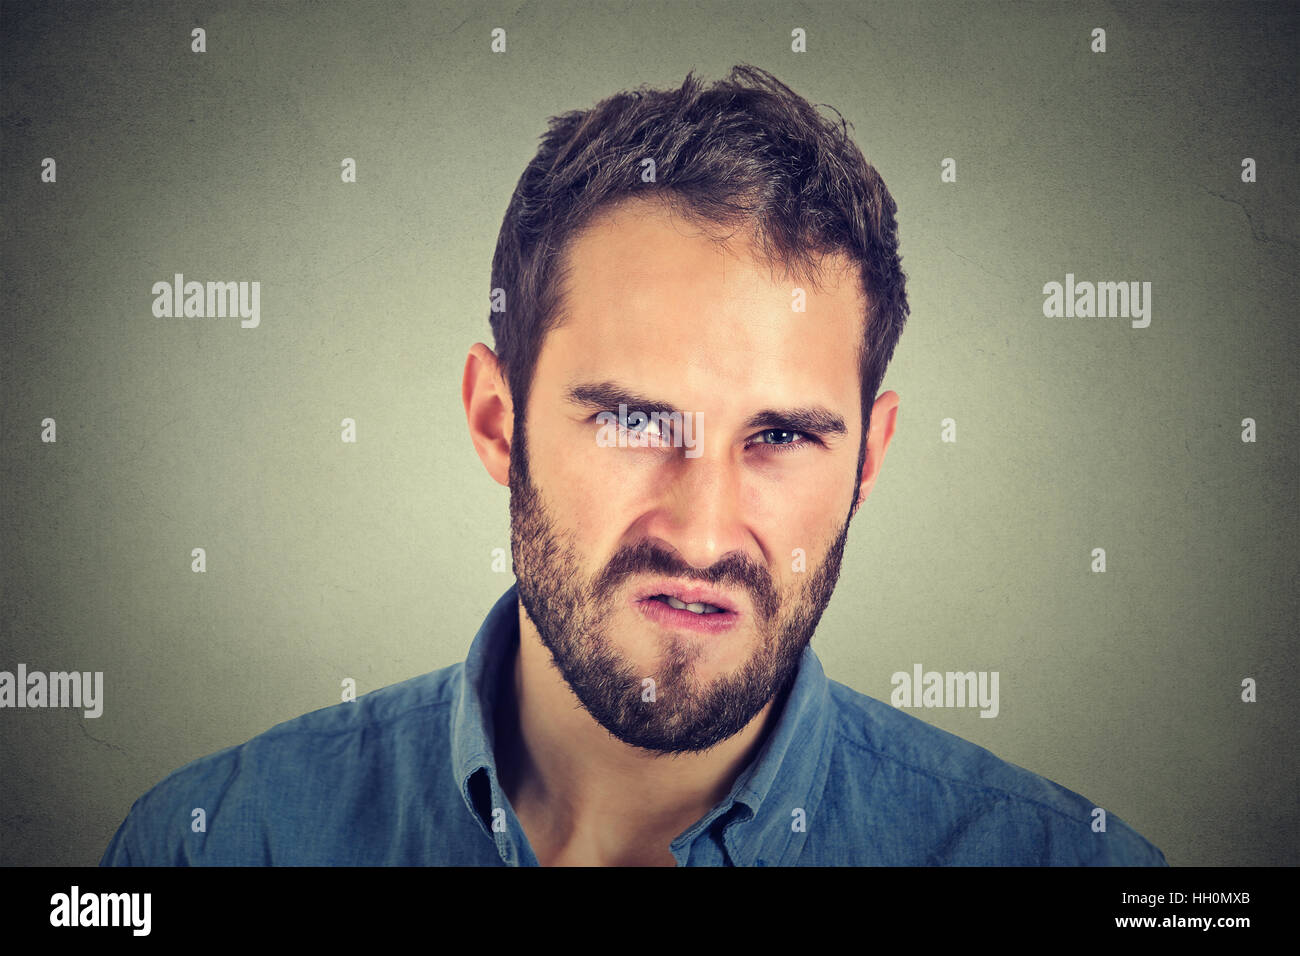 Annoyance. Angry displeased young man - Stock Image